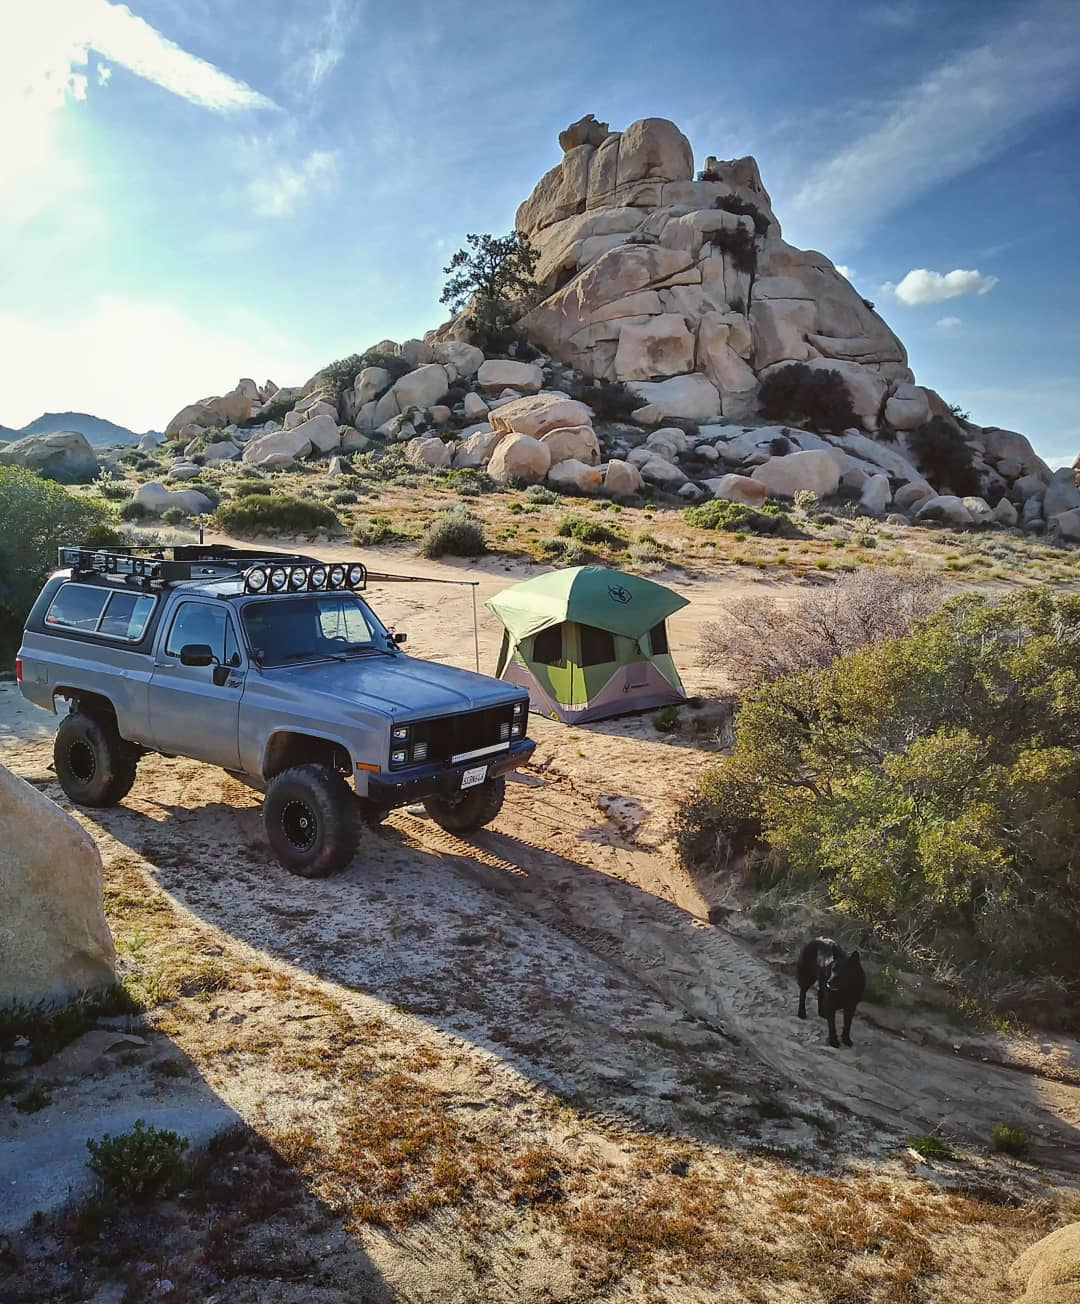 Camping with classic 4x4